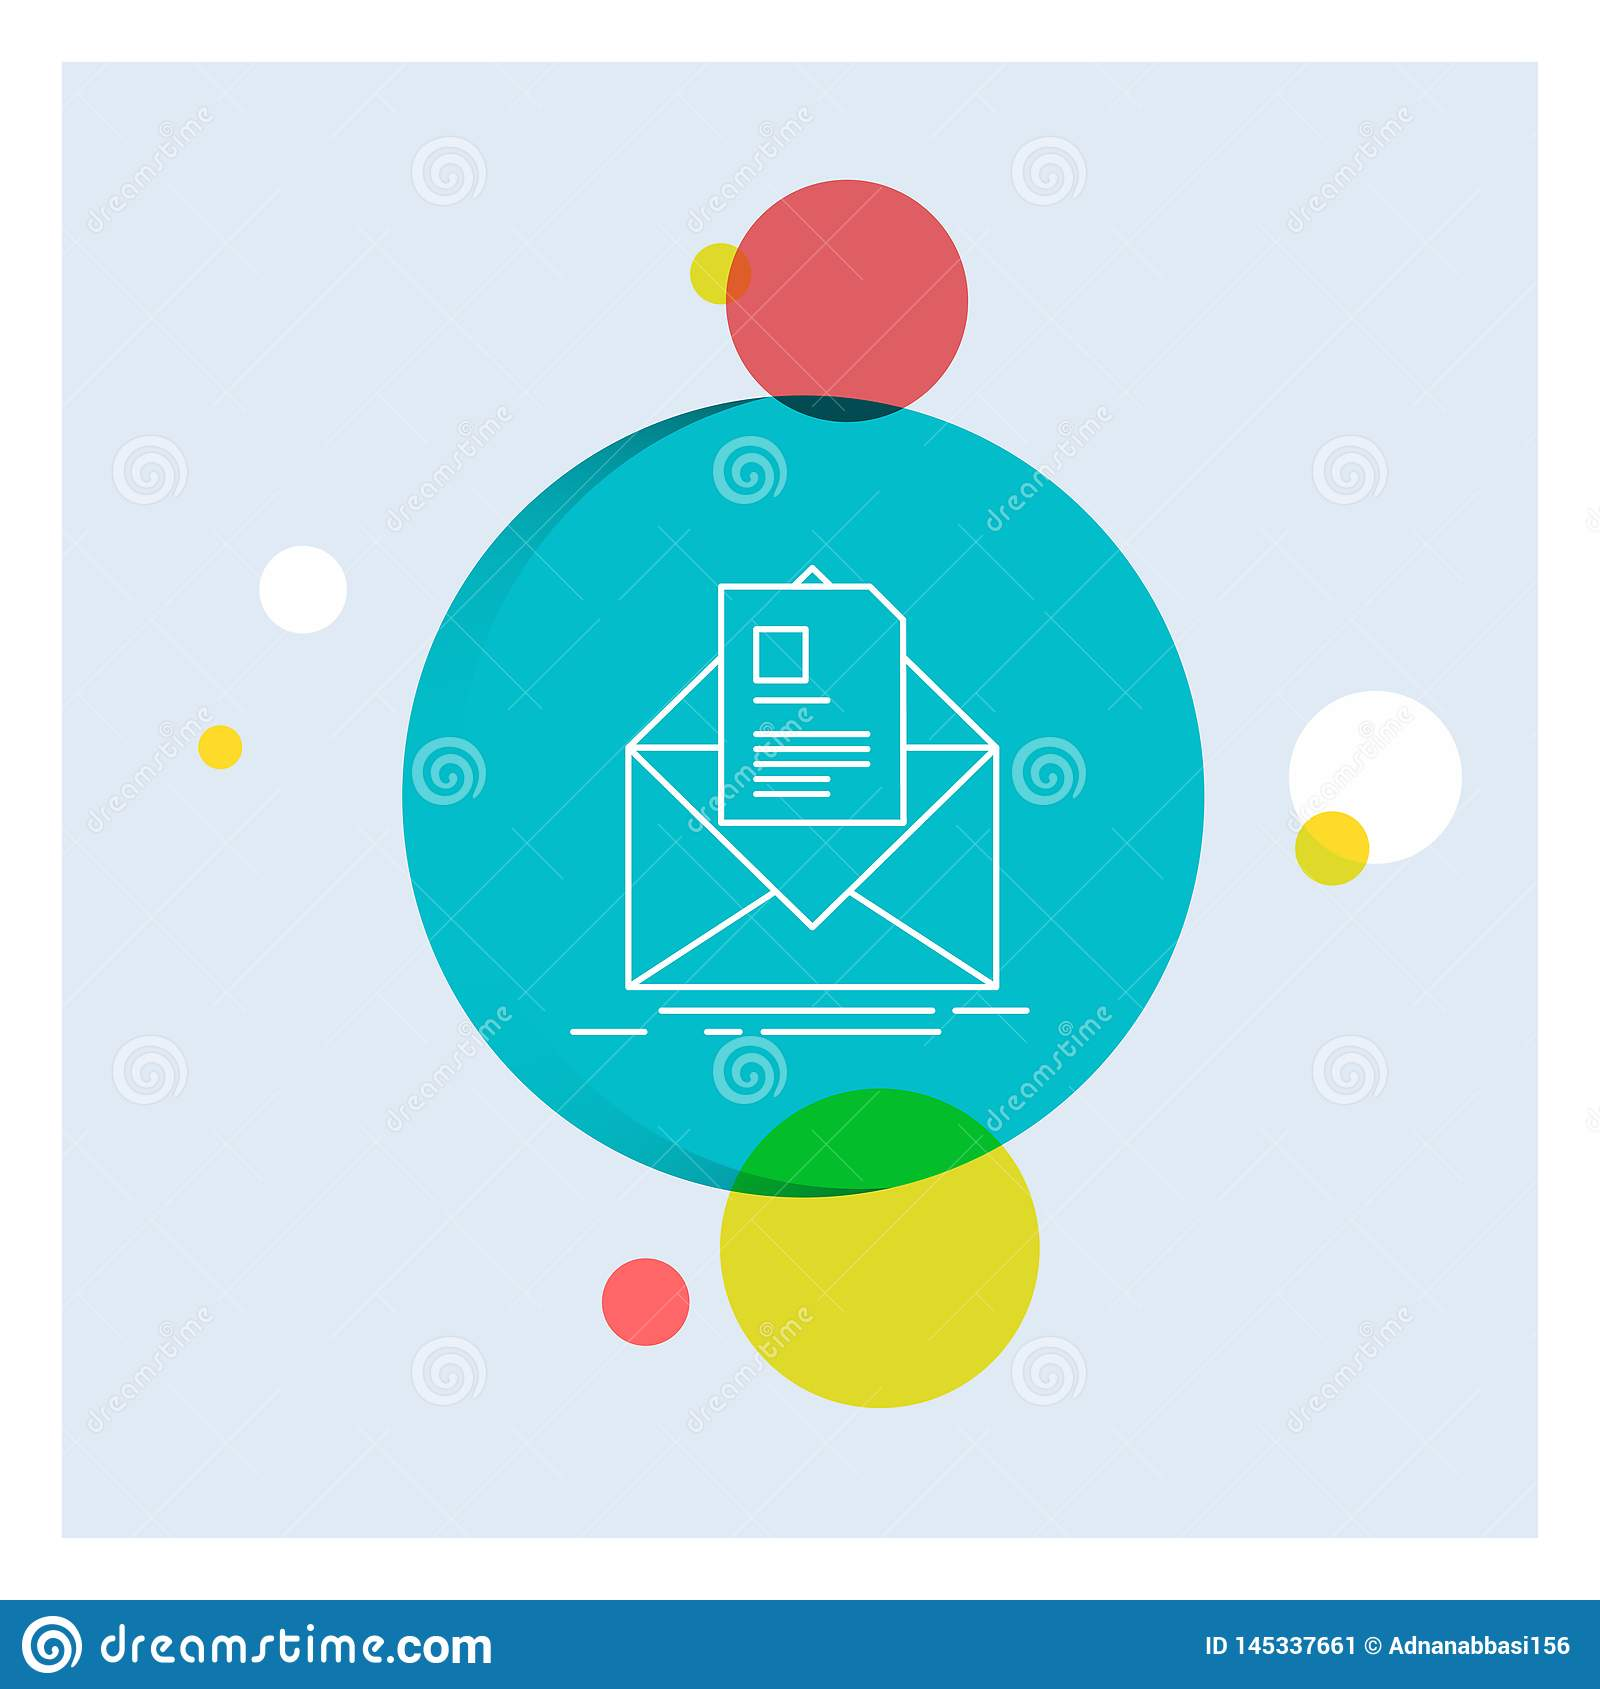 mail, contract, letter, email, briefing White Line Icon colorful Circle Background